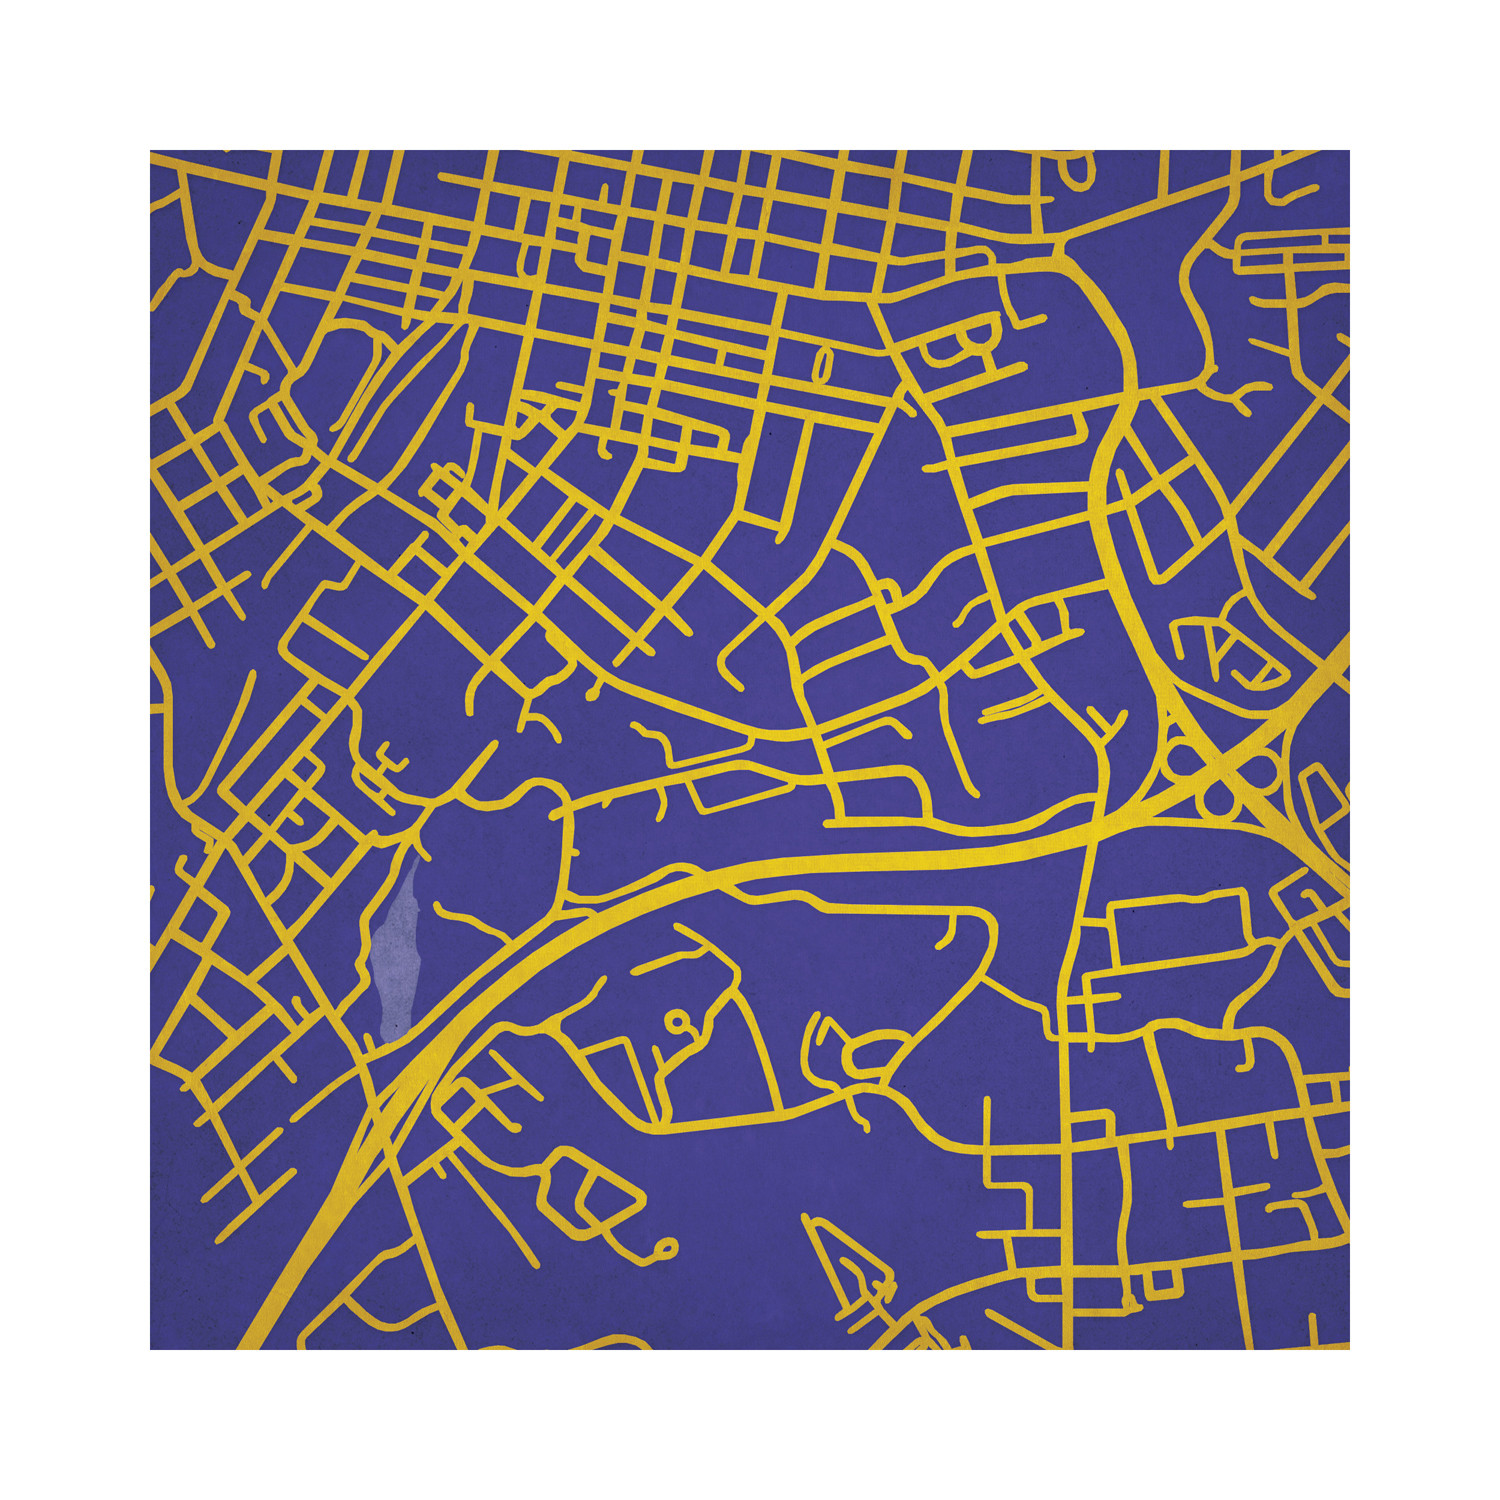 James Madison Campus Map.James Madison University Campus Maps Touch Of Modern